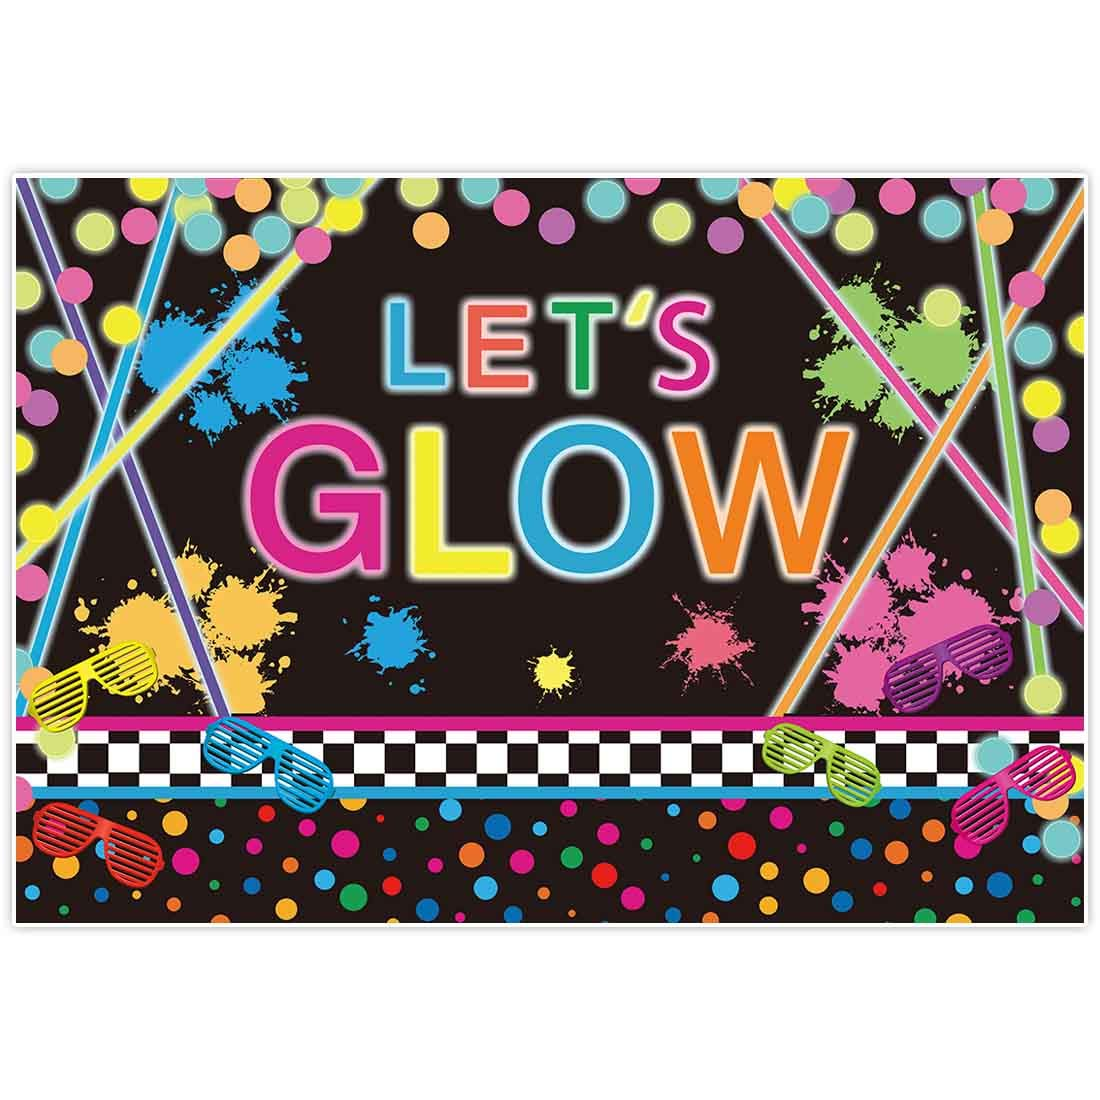 Allenjoy 7x5ft No Creases Neon Glow Backdrop Let's Crazy in the Dark Kids Adult Birthday Party Decoration Supplies Splatter Glowing Dessert Table Banner Photography Background Photo Studio Booth Props